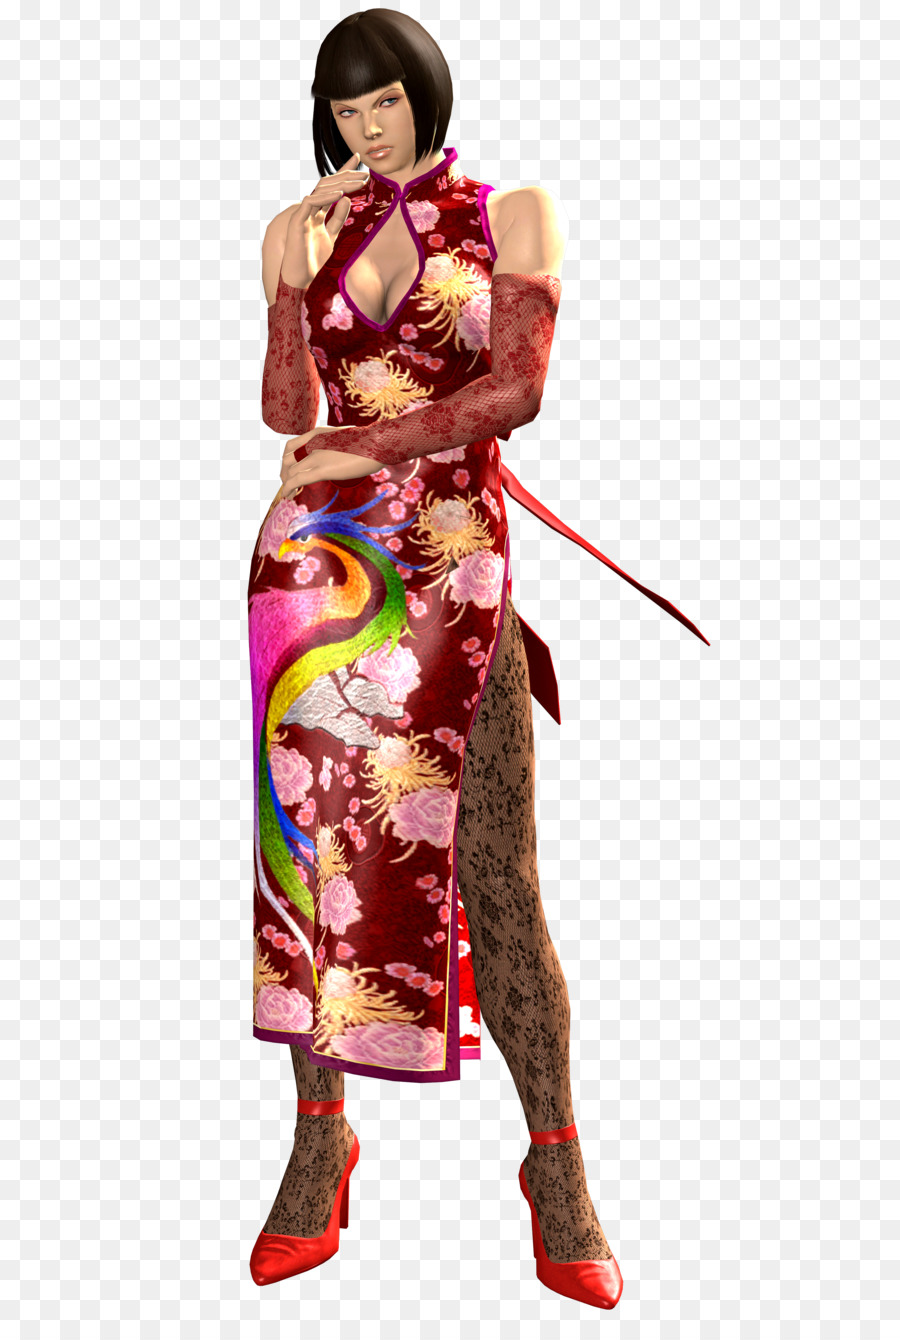 tekken 5 tekken 7 tekken 6 anna williams - anna williams png